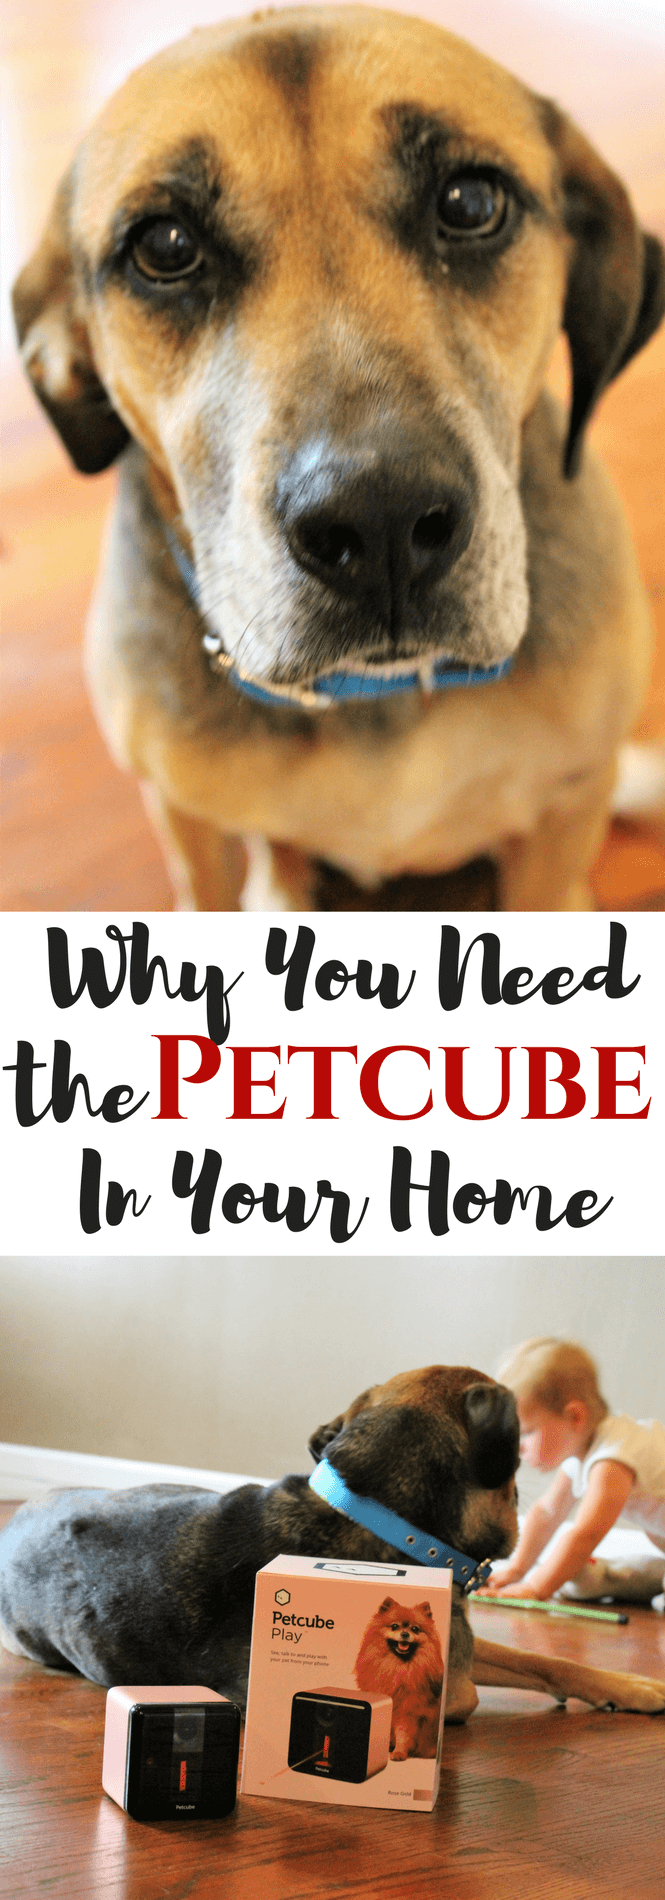 Why You Need the Petcube In Your Home, #petcube, #ad, pets